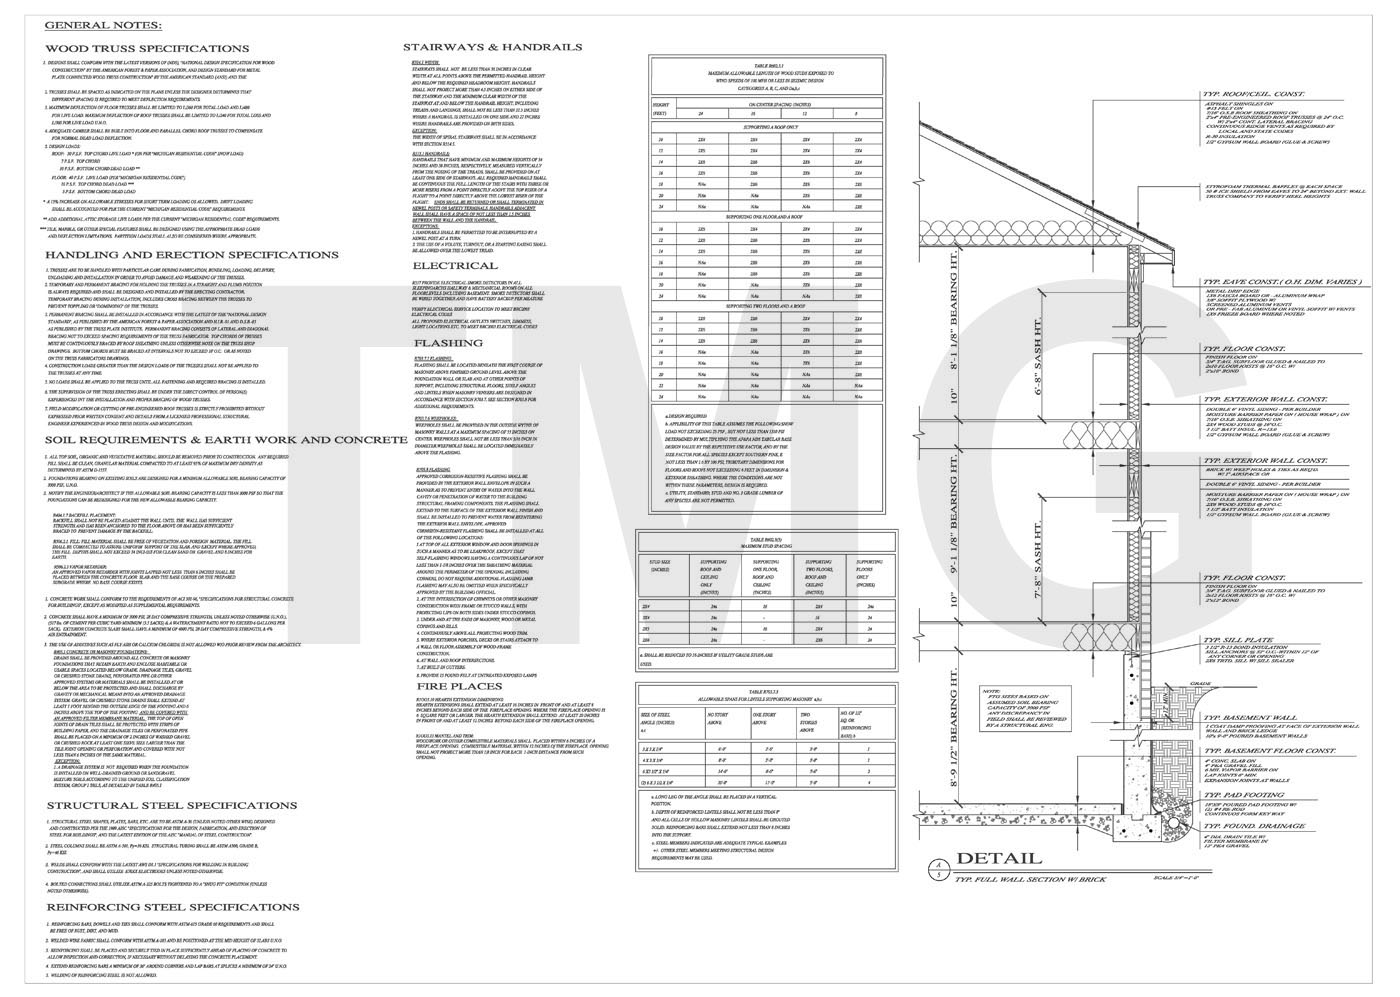 Residential Electrical Plan General Notes Wiring Library Details And Foundation